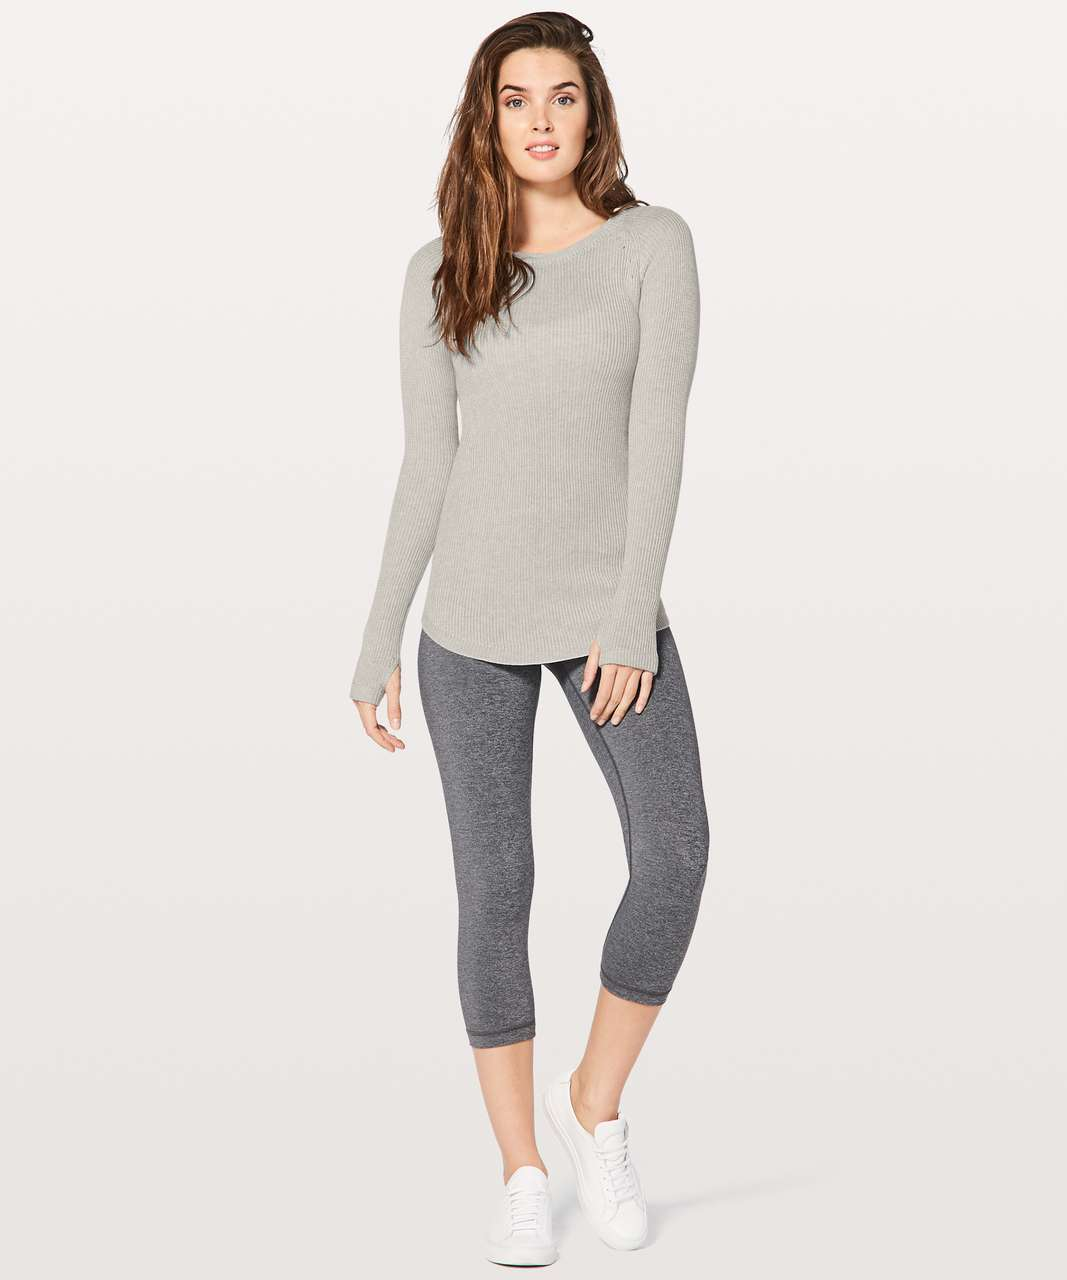 Lululemon Cabin Yogi Long Sleeve - White / Heathered Light Grey